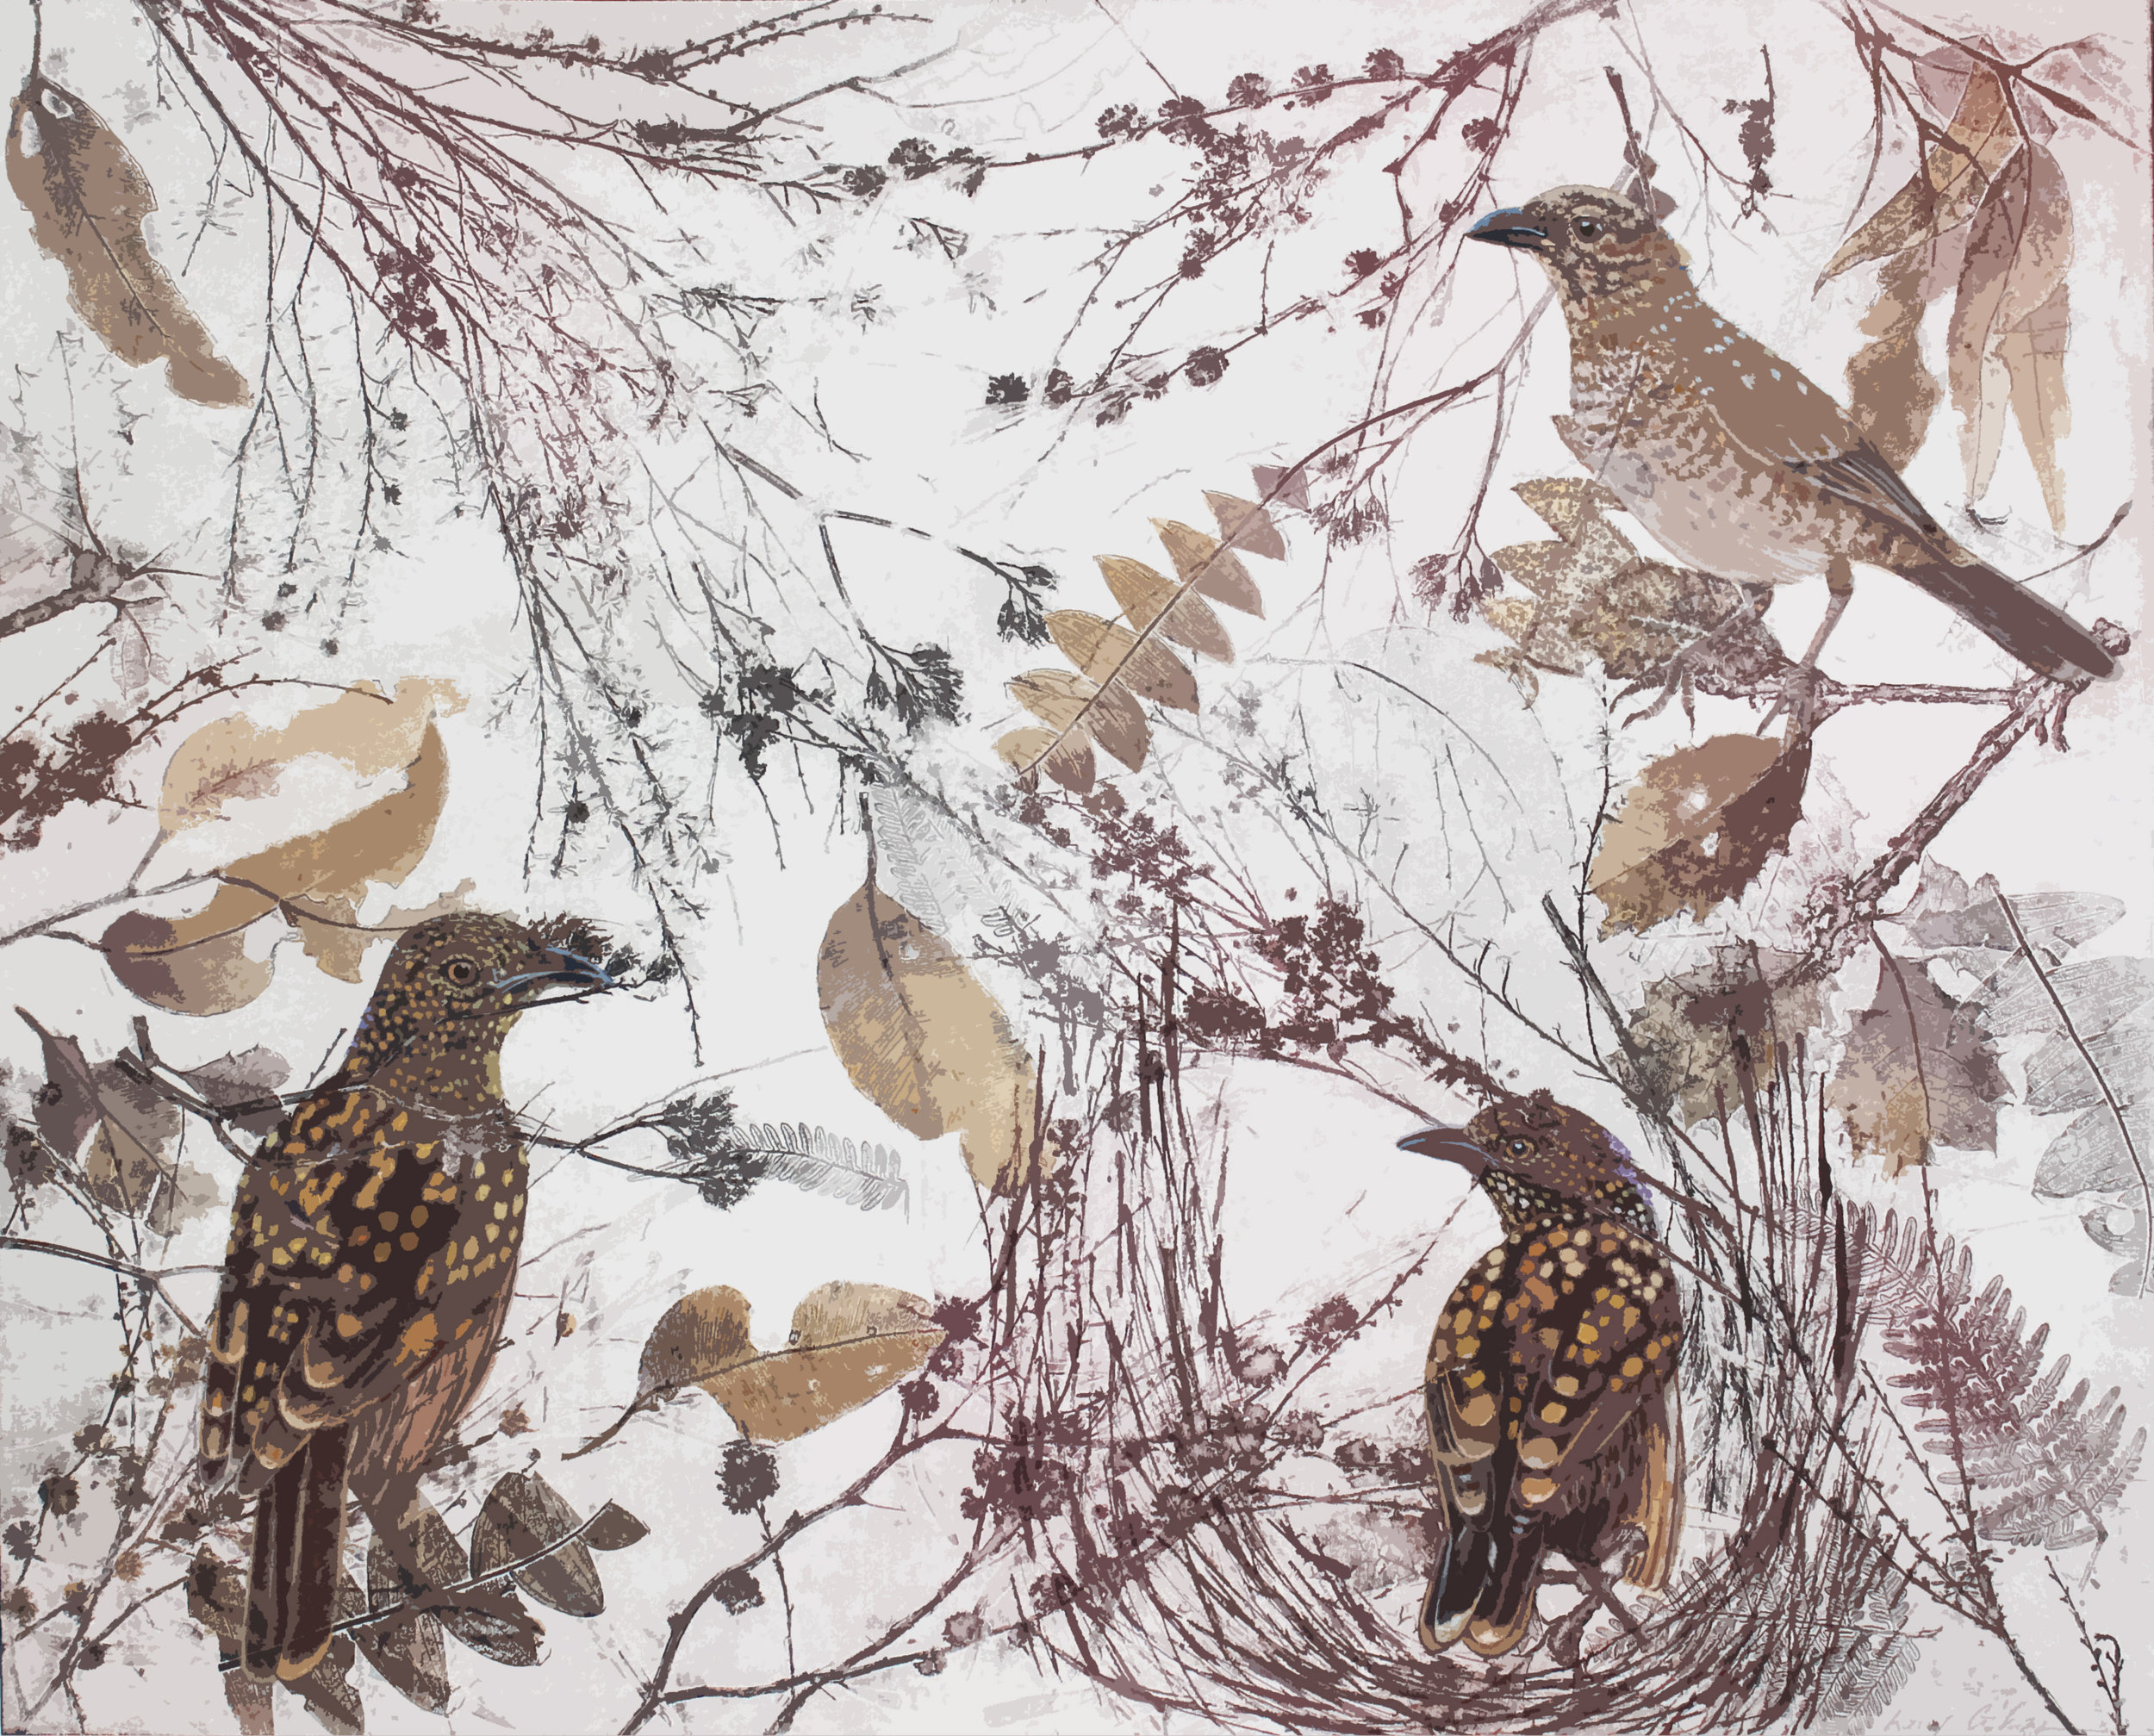 K.Gibson-Bowerbird Banter Soft - ground etching and acrylic on Hahnemule Paper 100cm x 80cm 2.jpg